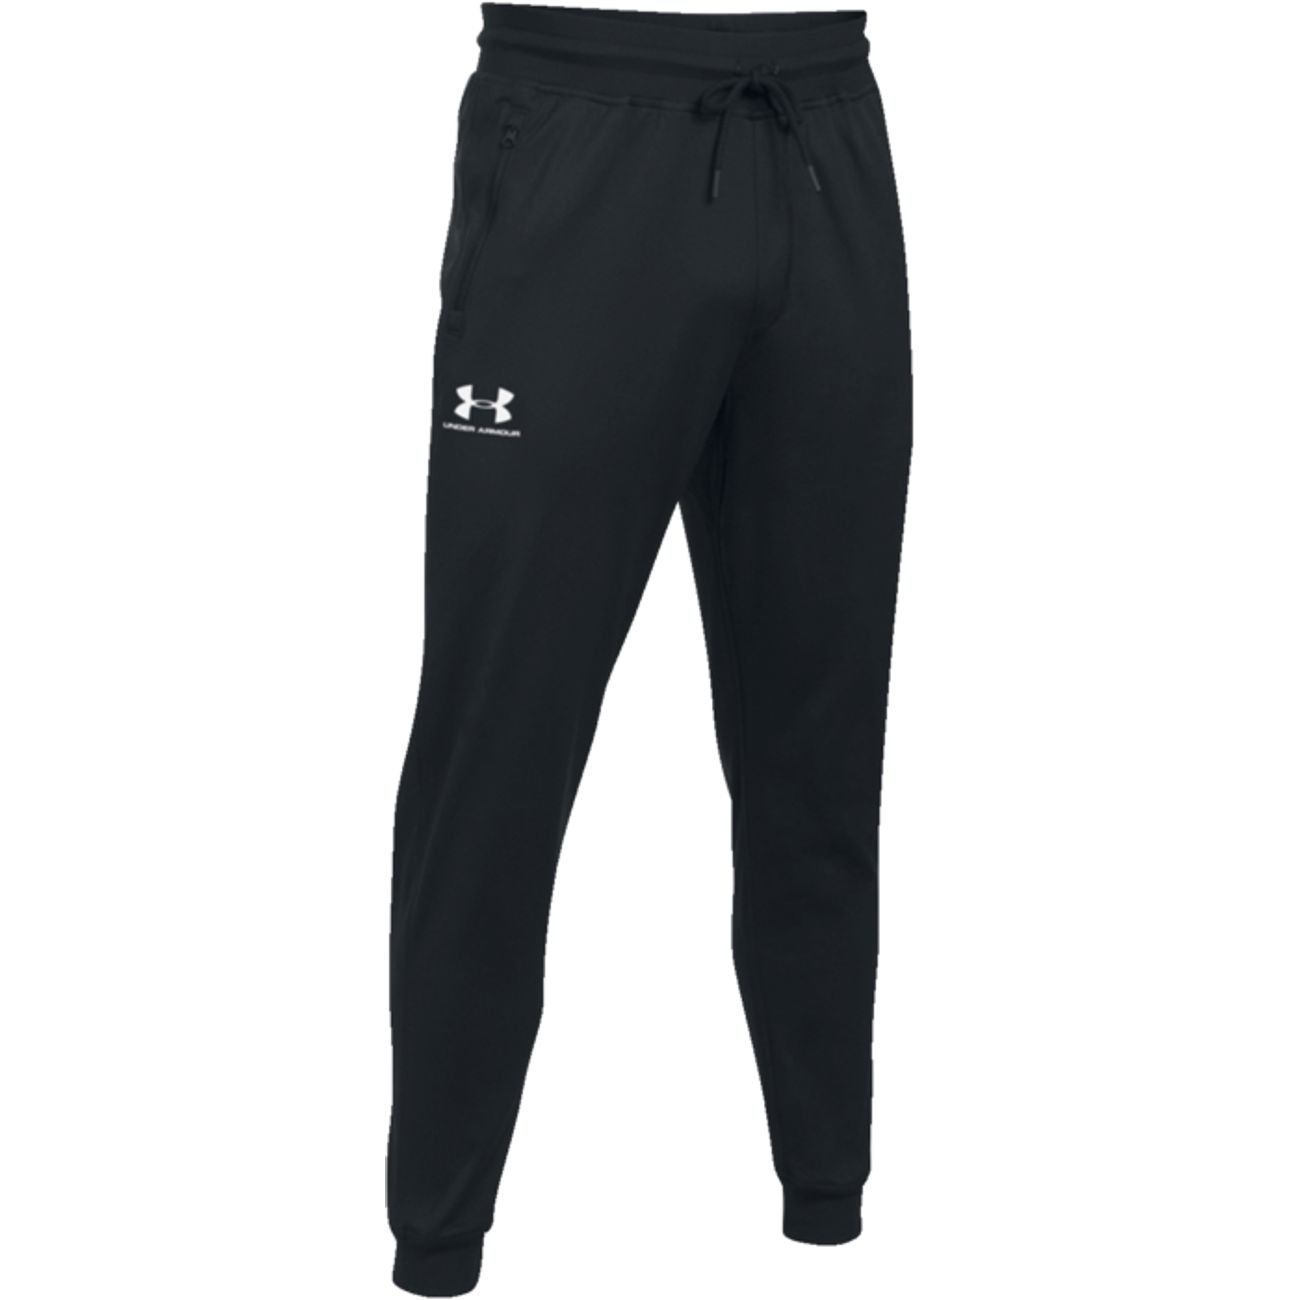 PANTALON Multisport mixte UNDER ARMOUR SPORTSTYLE TRICOT JOGGER